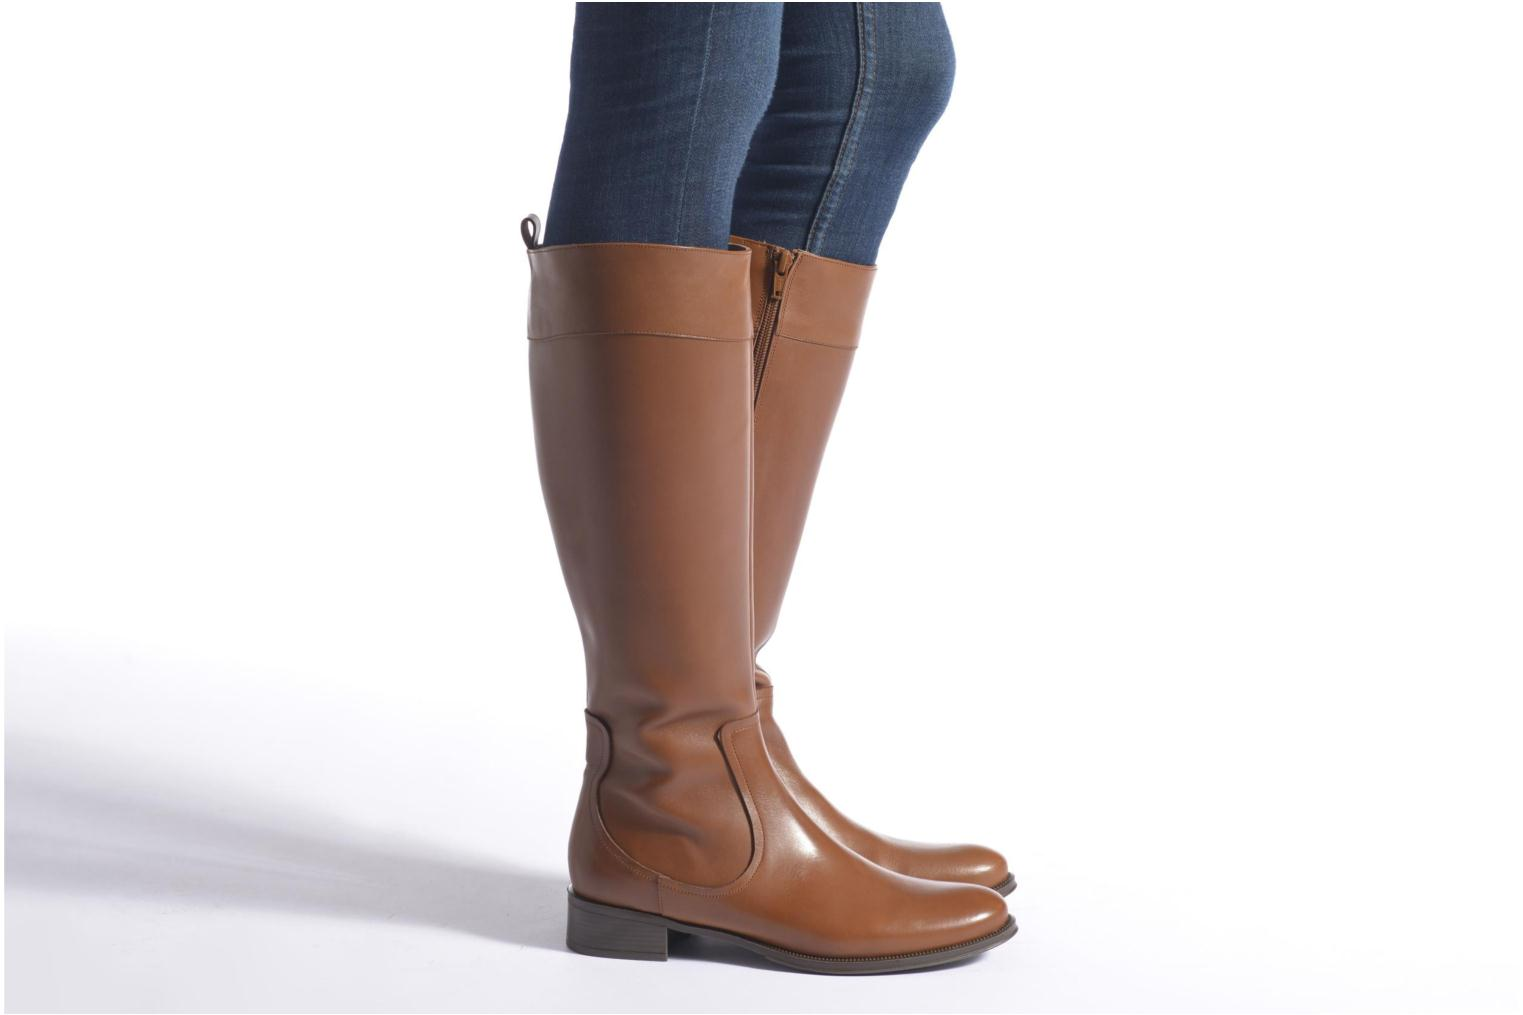 Boots Camp #15 Surf cognac